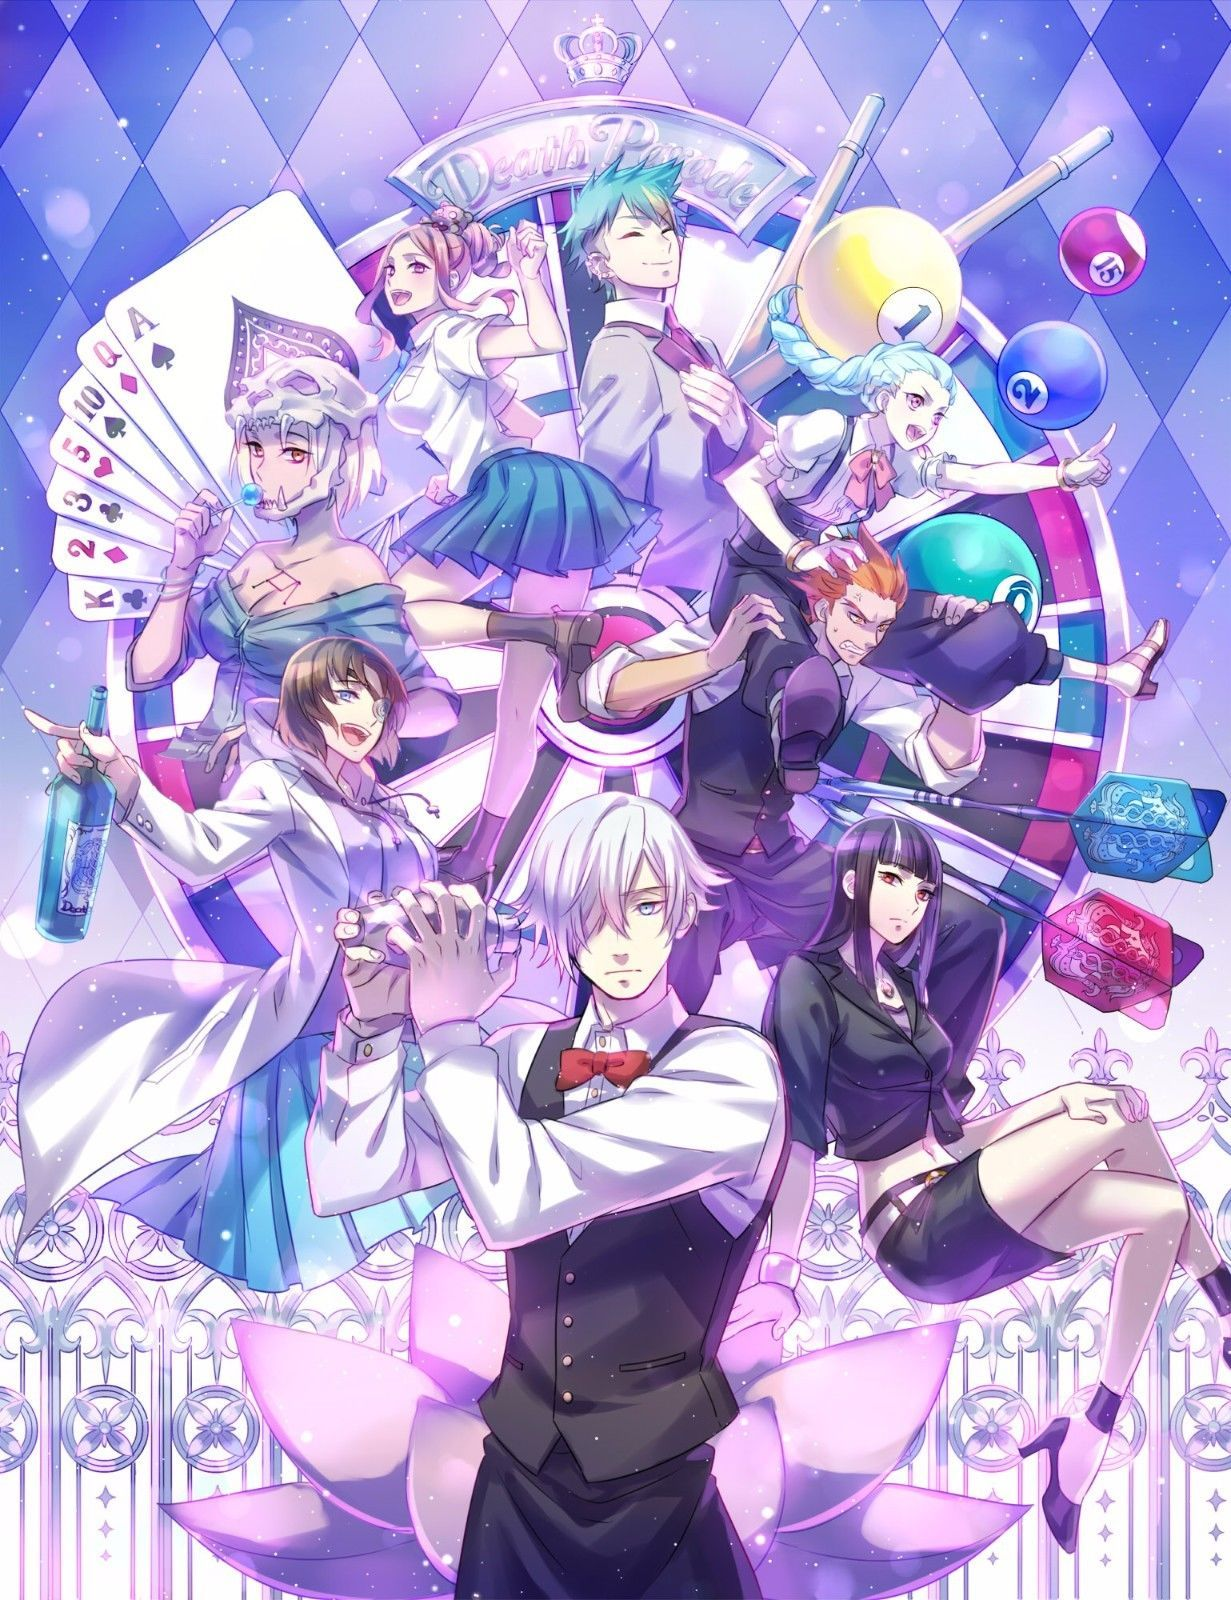 Death Parade Anime Poster 13 x 19 | eBay